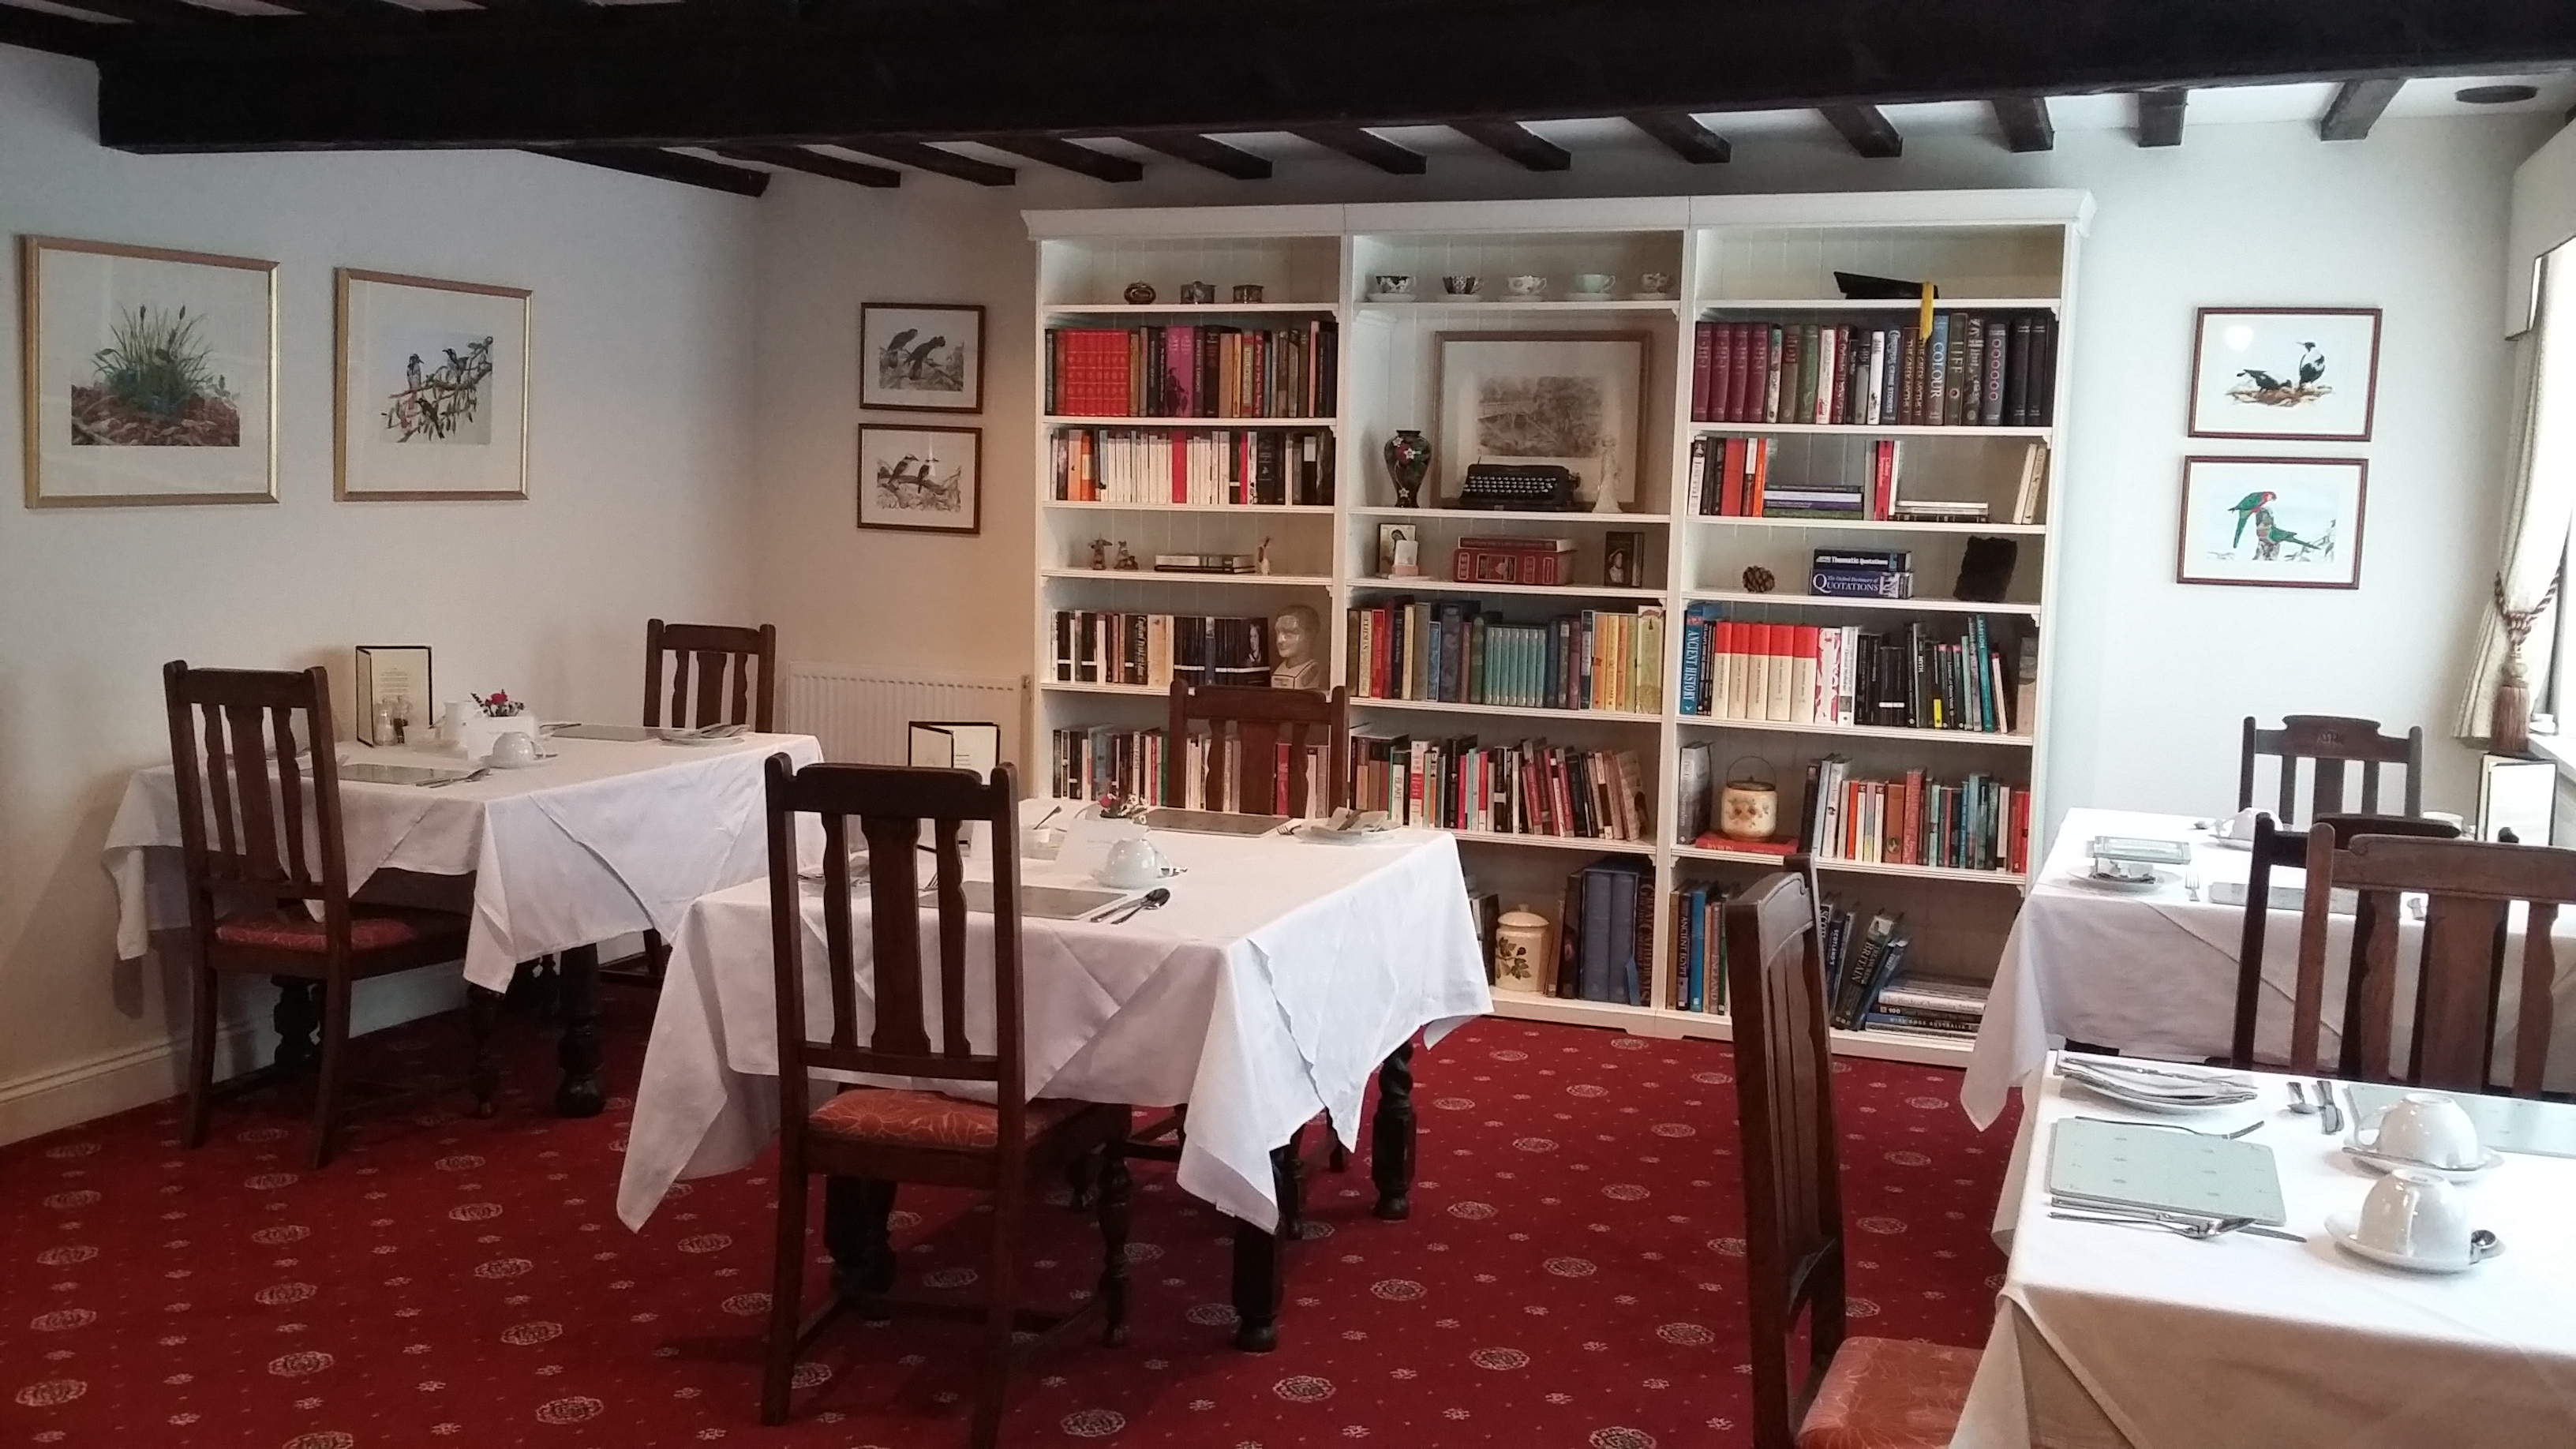 Our breakfast room and library, feel free to browse over a leisurely breakfast